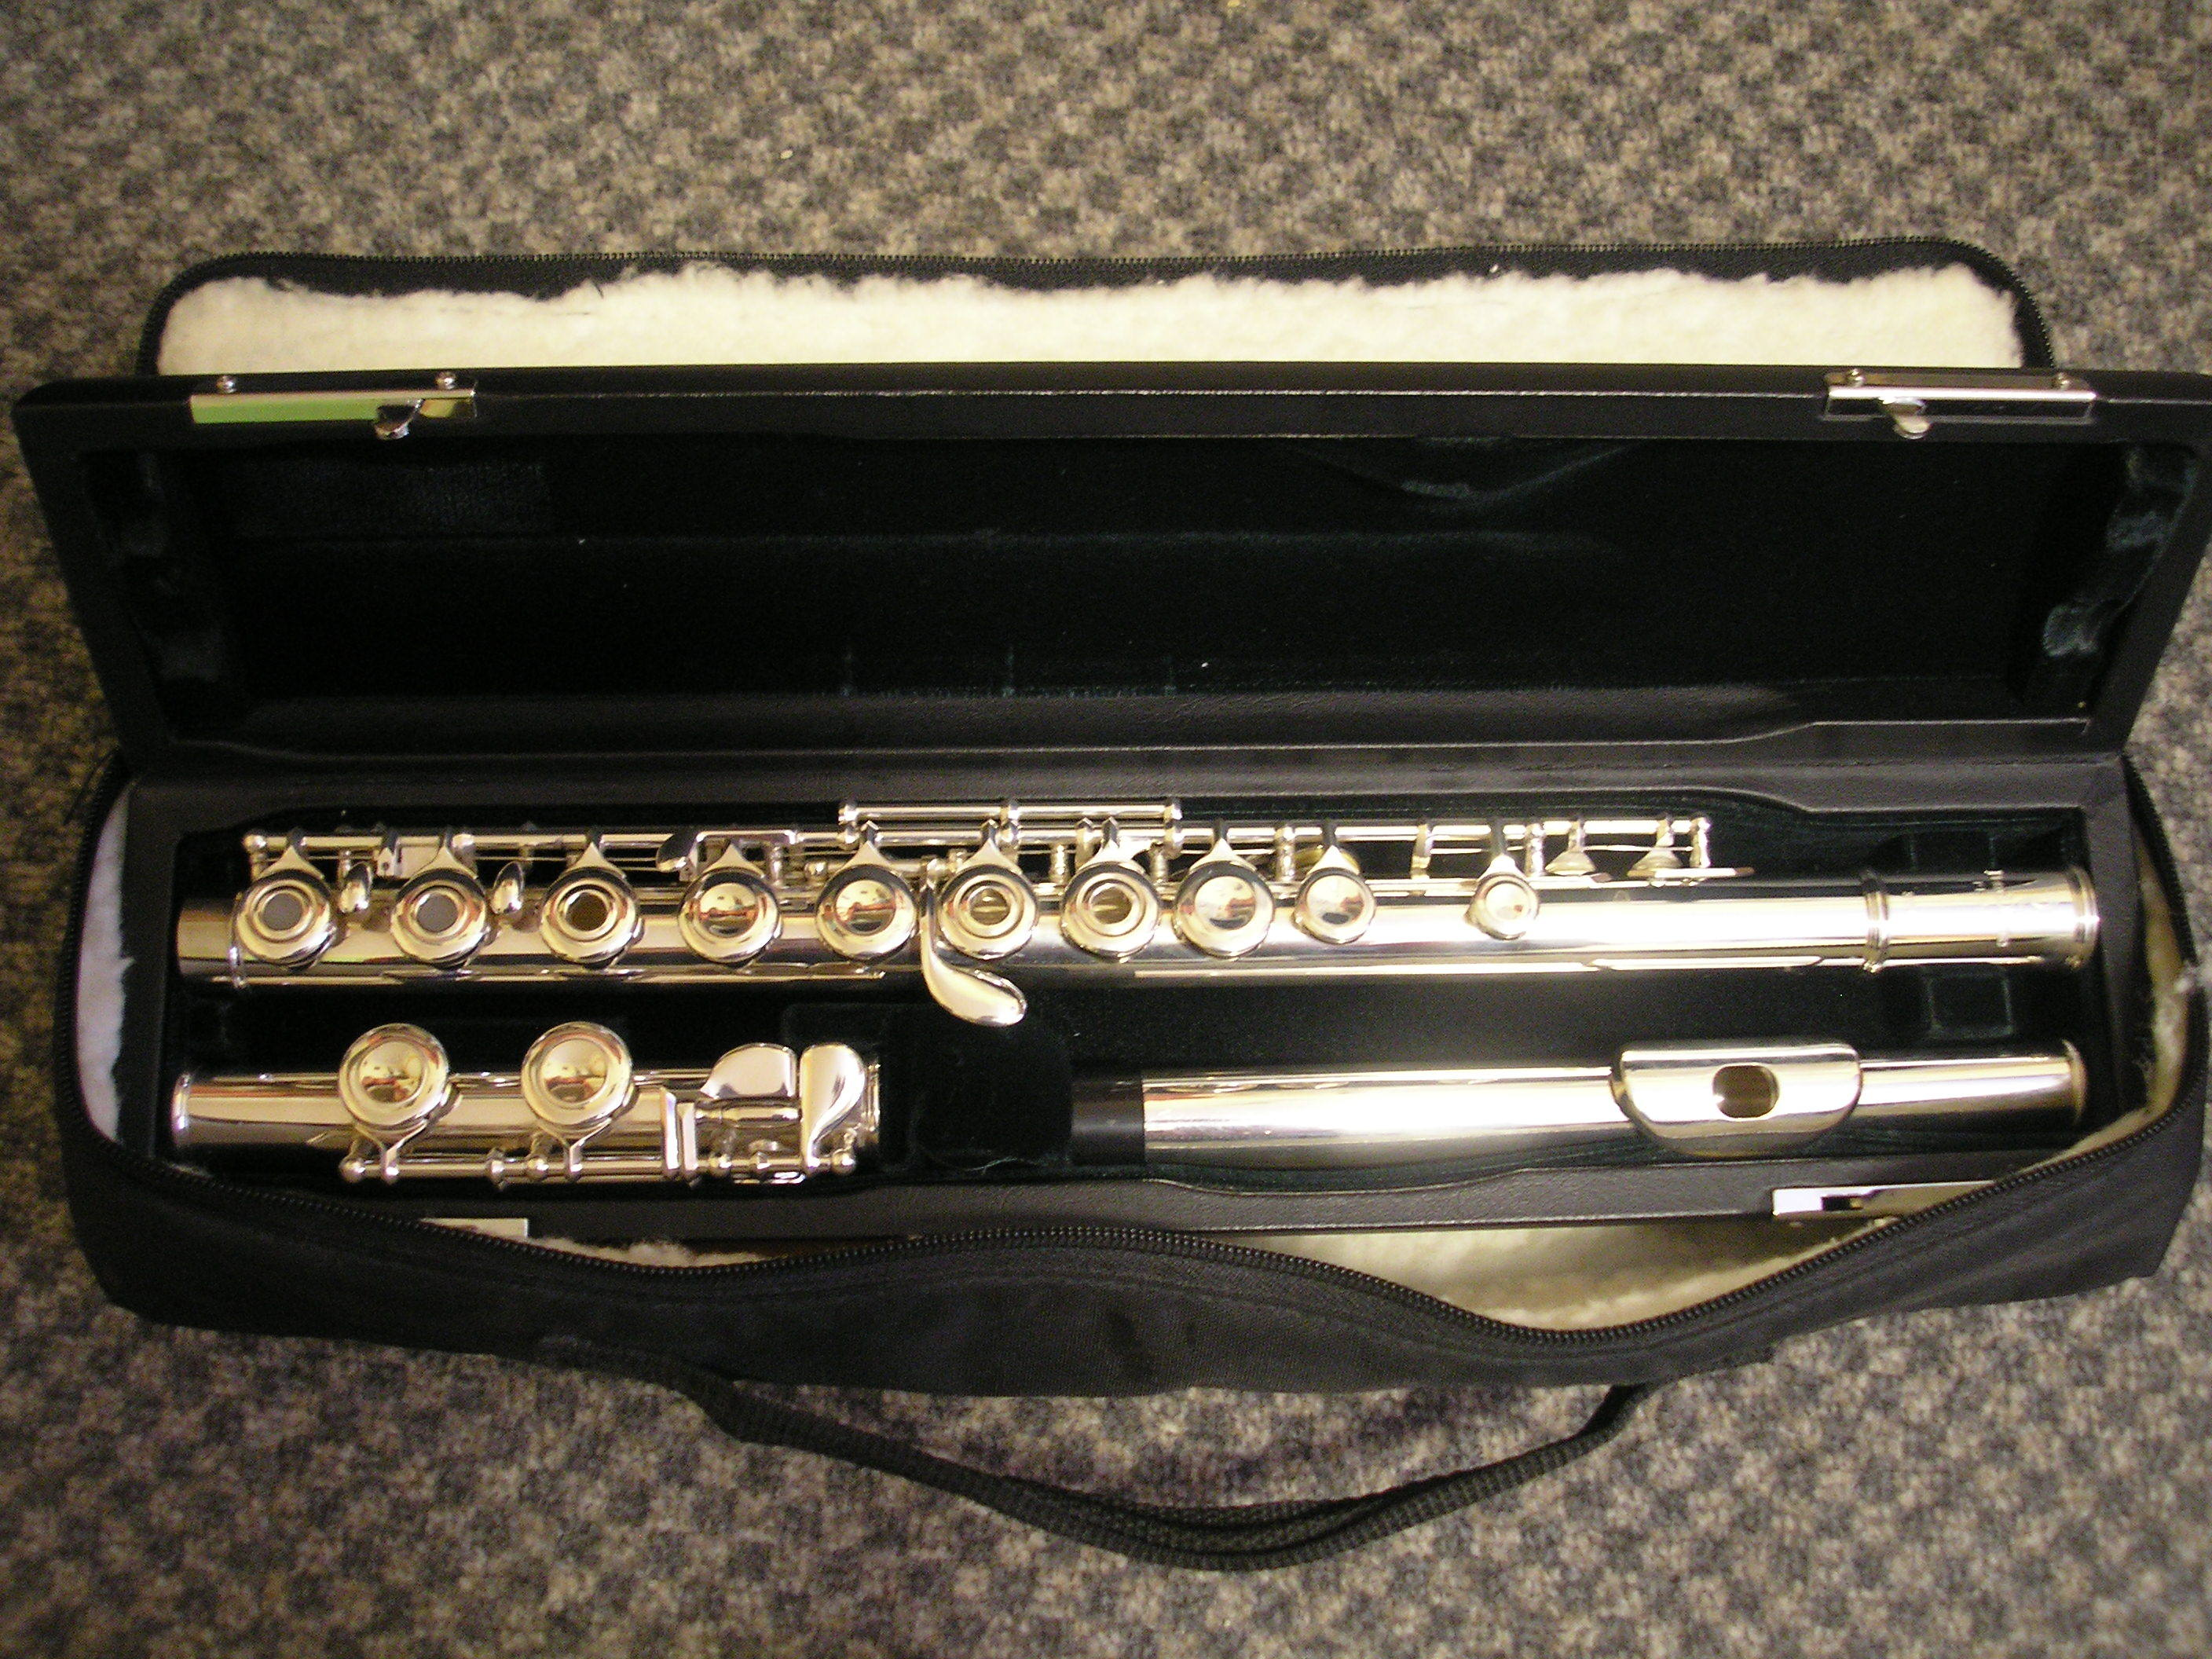 Fl te traversi re pearl pf 501 neuilly sur marne 93330 for Housse flute traversiere